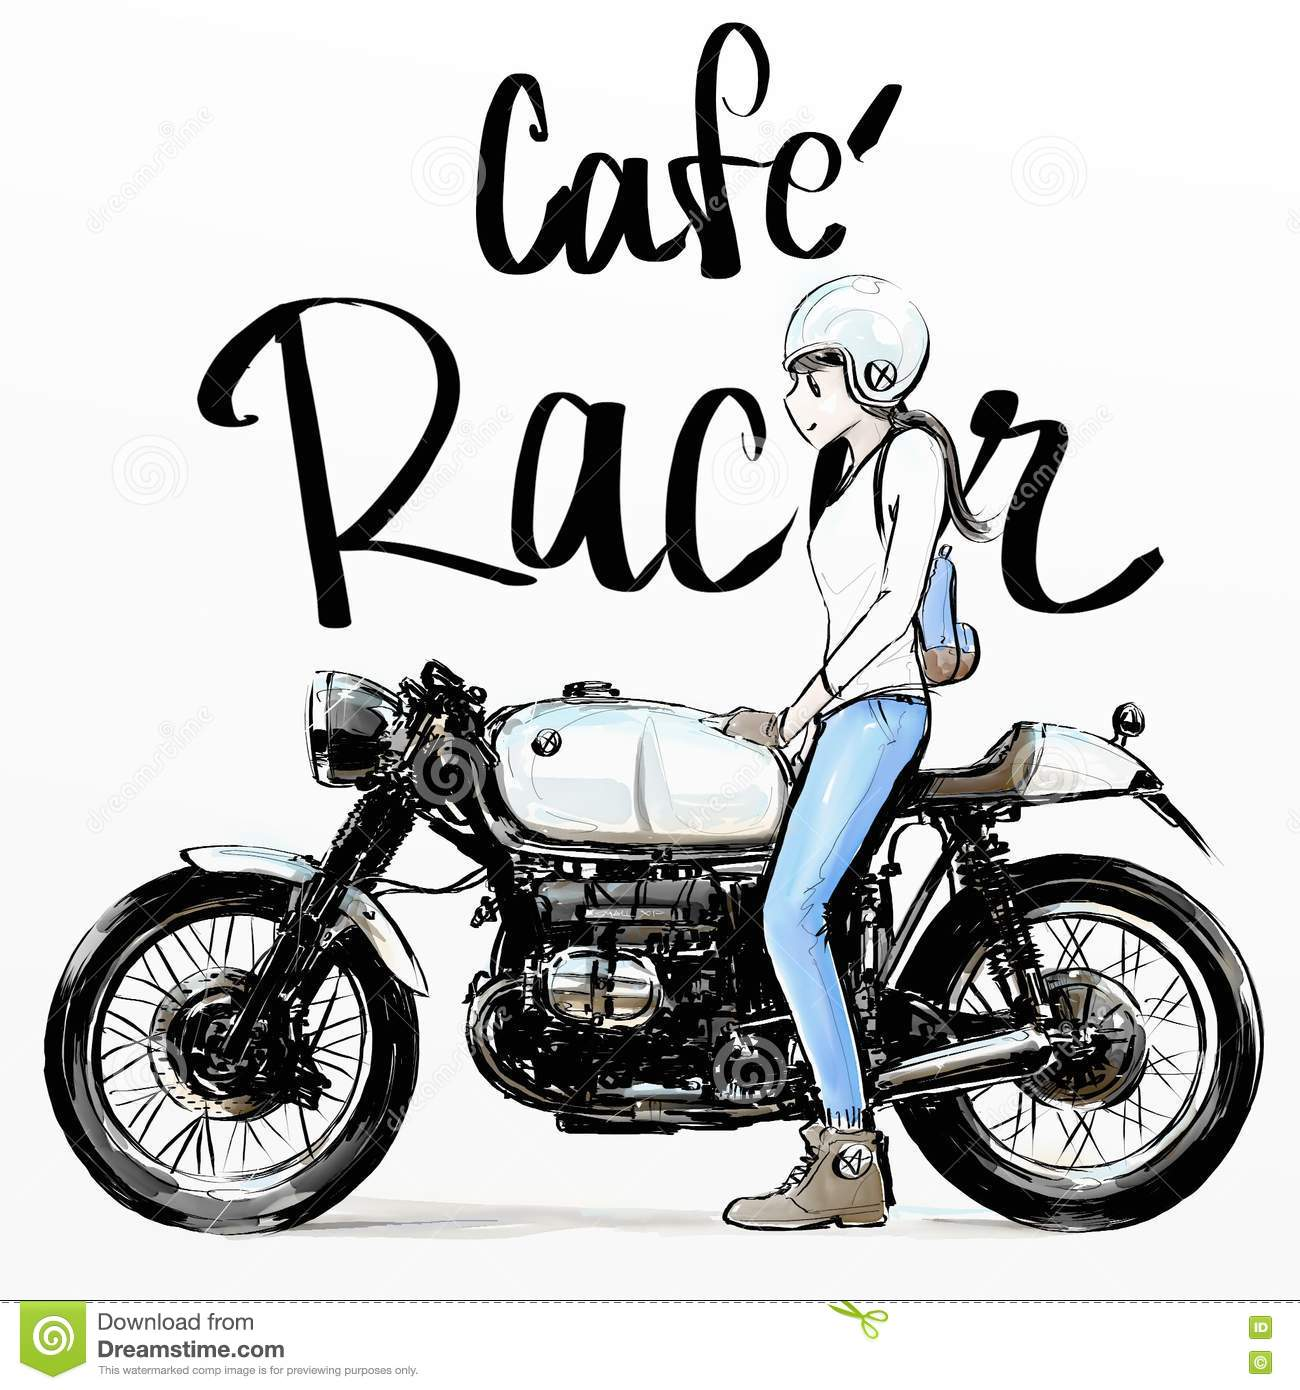 Cute Girl Riding Motorcycle Royalty Free Stock Photography